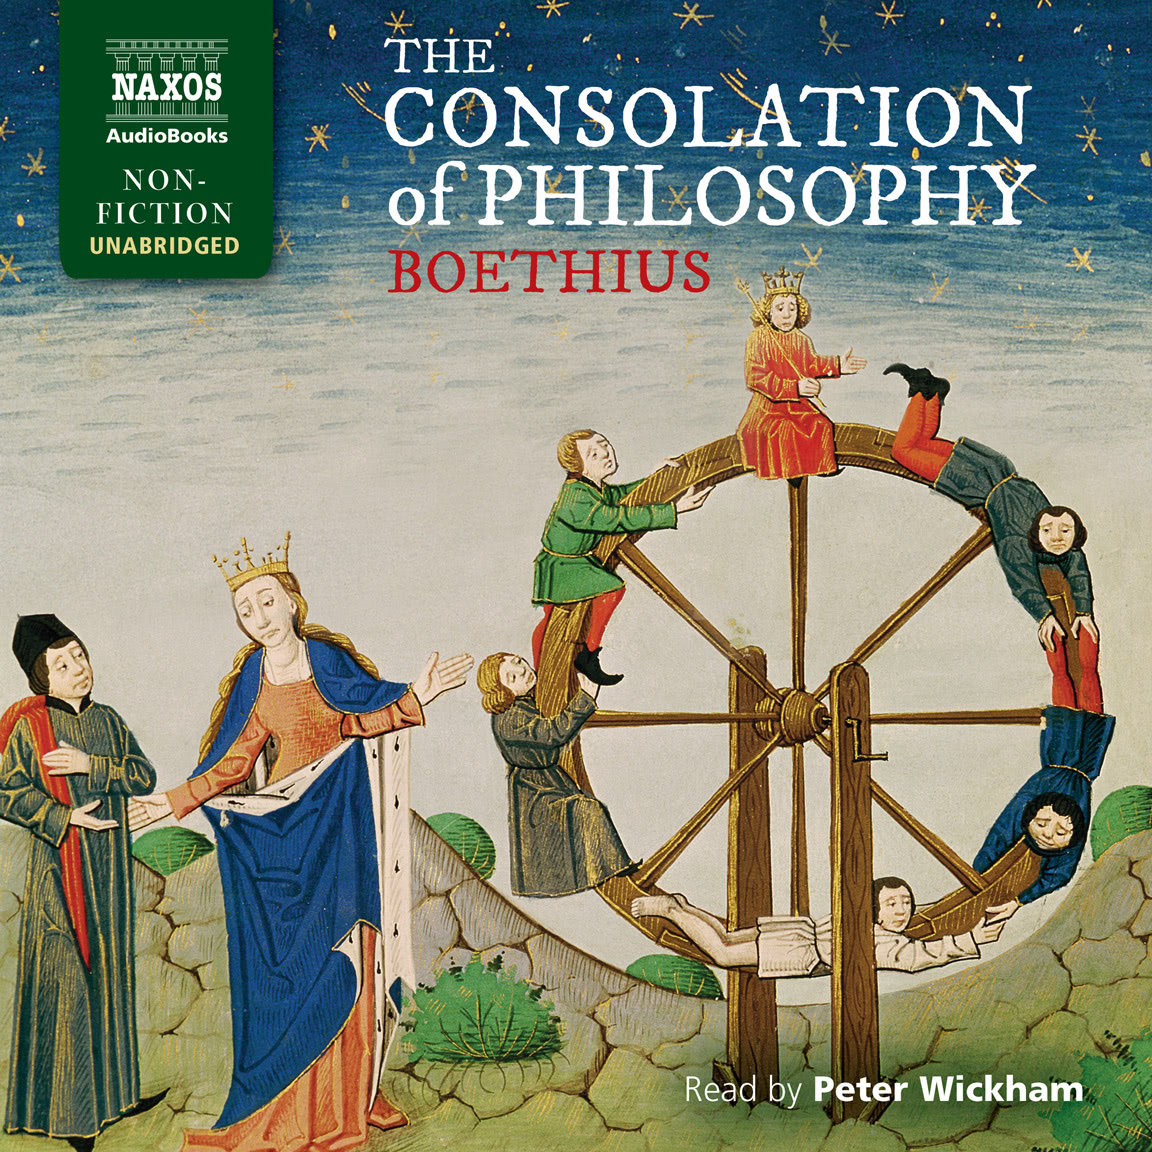 The Consolation of Philosophy (unabridged)